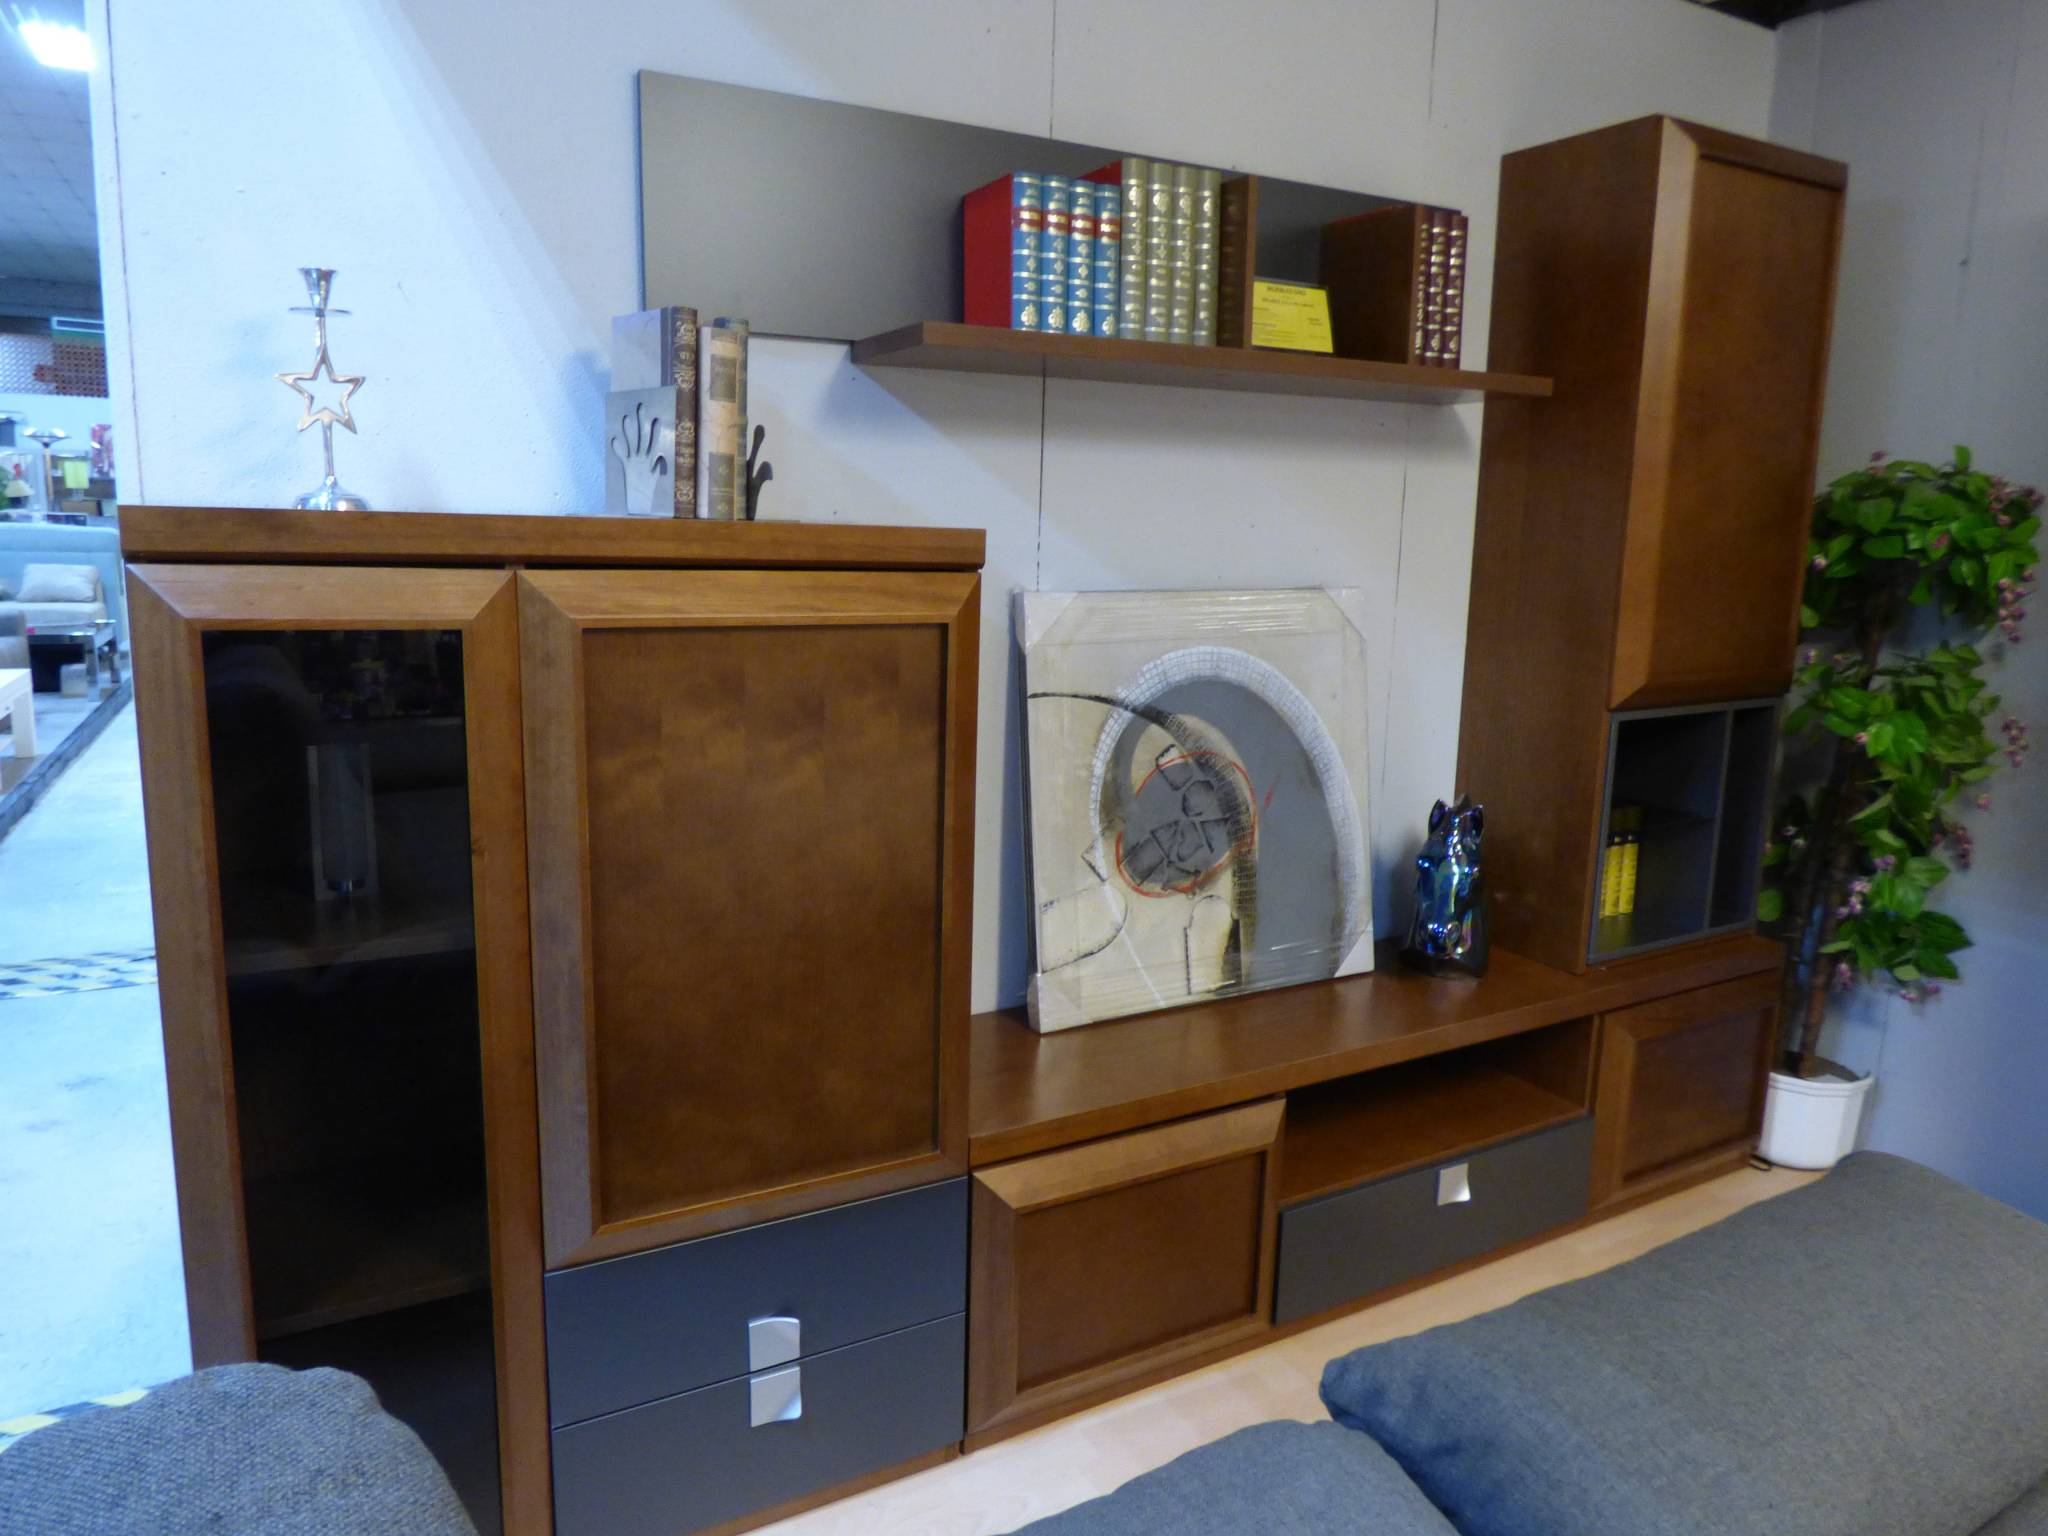 Apilable Chapa Natural Apilable Diseño Nórdico en Chapa Natural.  Muebles Díaz